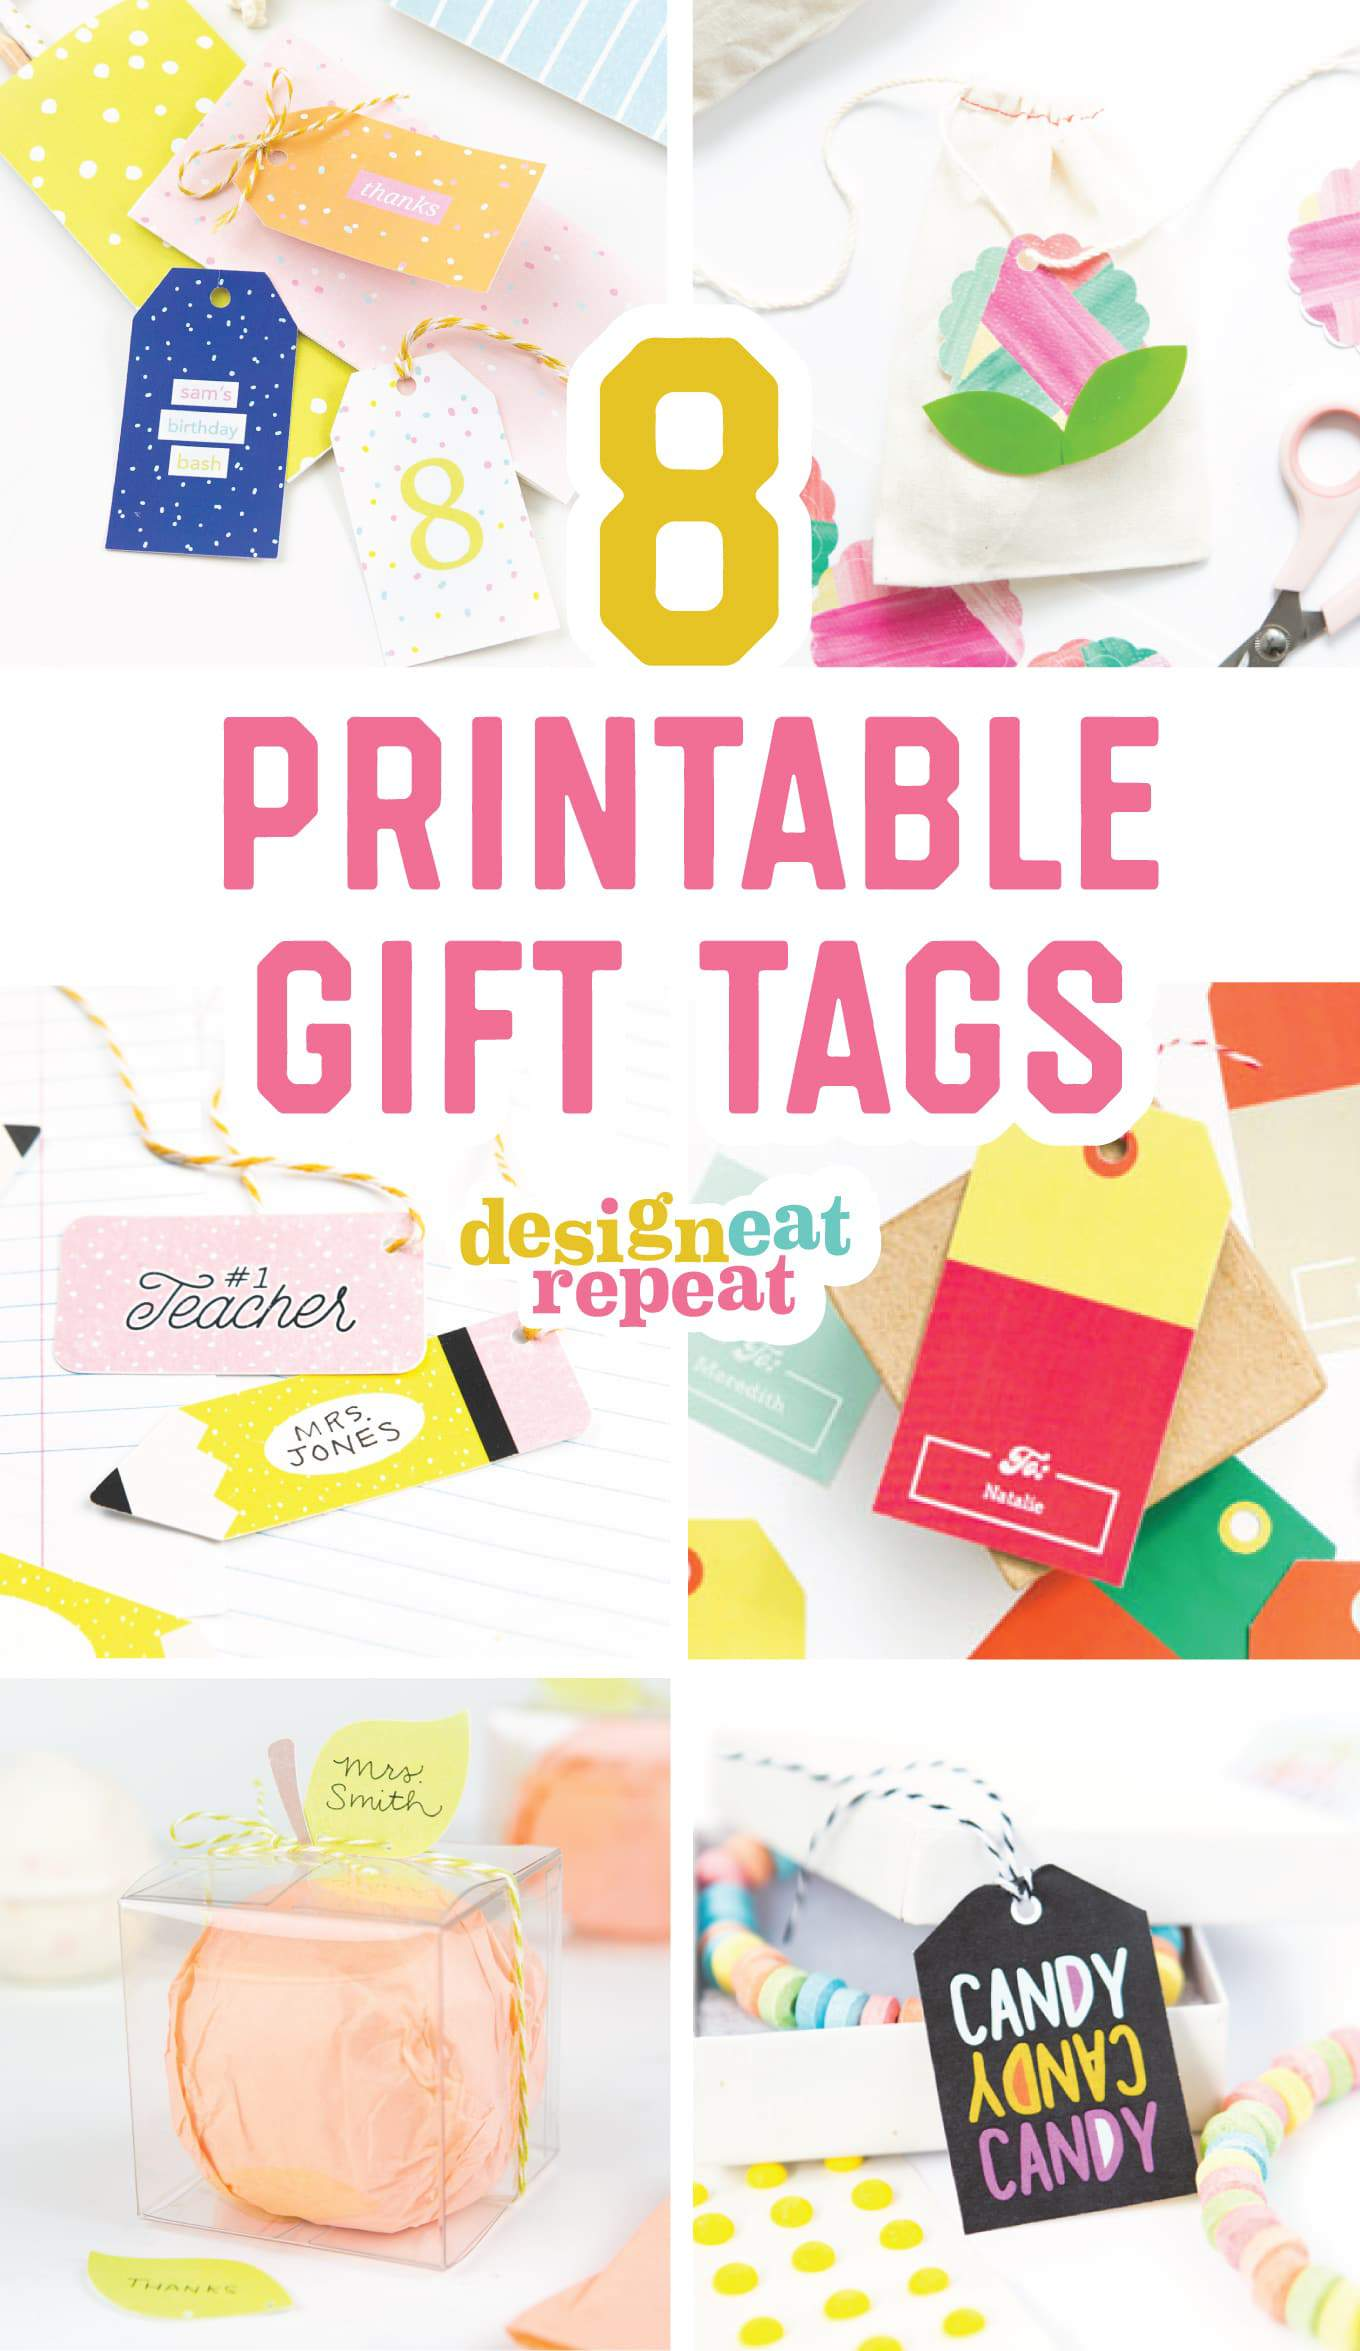 8 colorful free printable gift tags for any occasion whether youre putting together last minute party favors birthday gifts or negle Choice Image